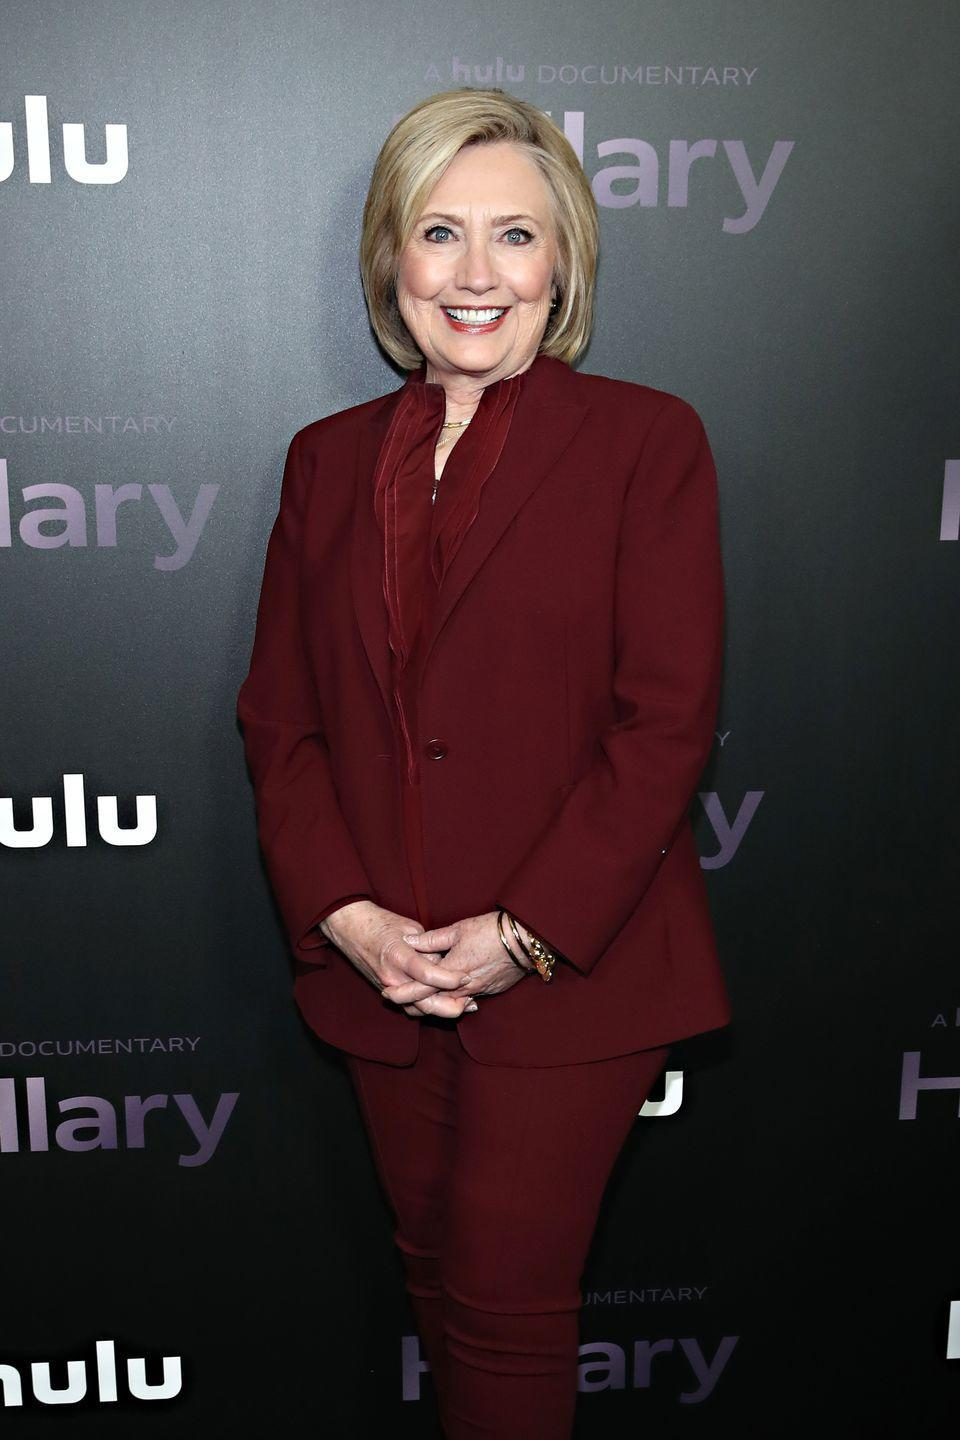 <p>Former Secretary of State and Former First Lady Hillary Clinton was born on this day in 1947. </p><p>Also on this day: <br>Keith Urban<br>Pat Sajak<br>Cary Elwes<br>Seth MacFarlane <br>Dylan McDermott <br>Jaclyn Smith <br>John Heder</p>